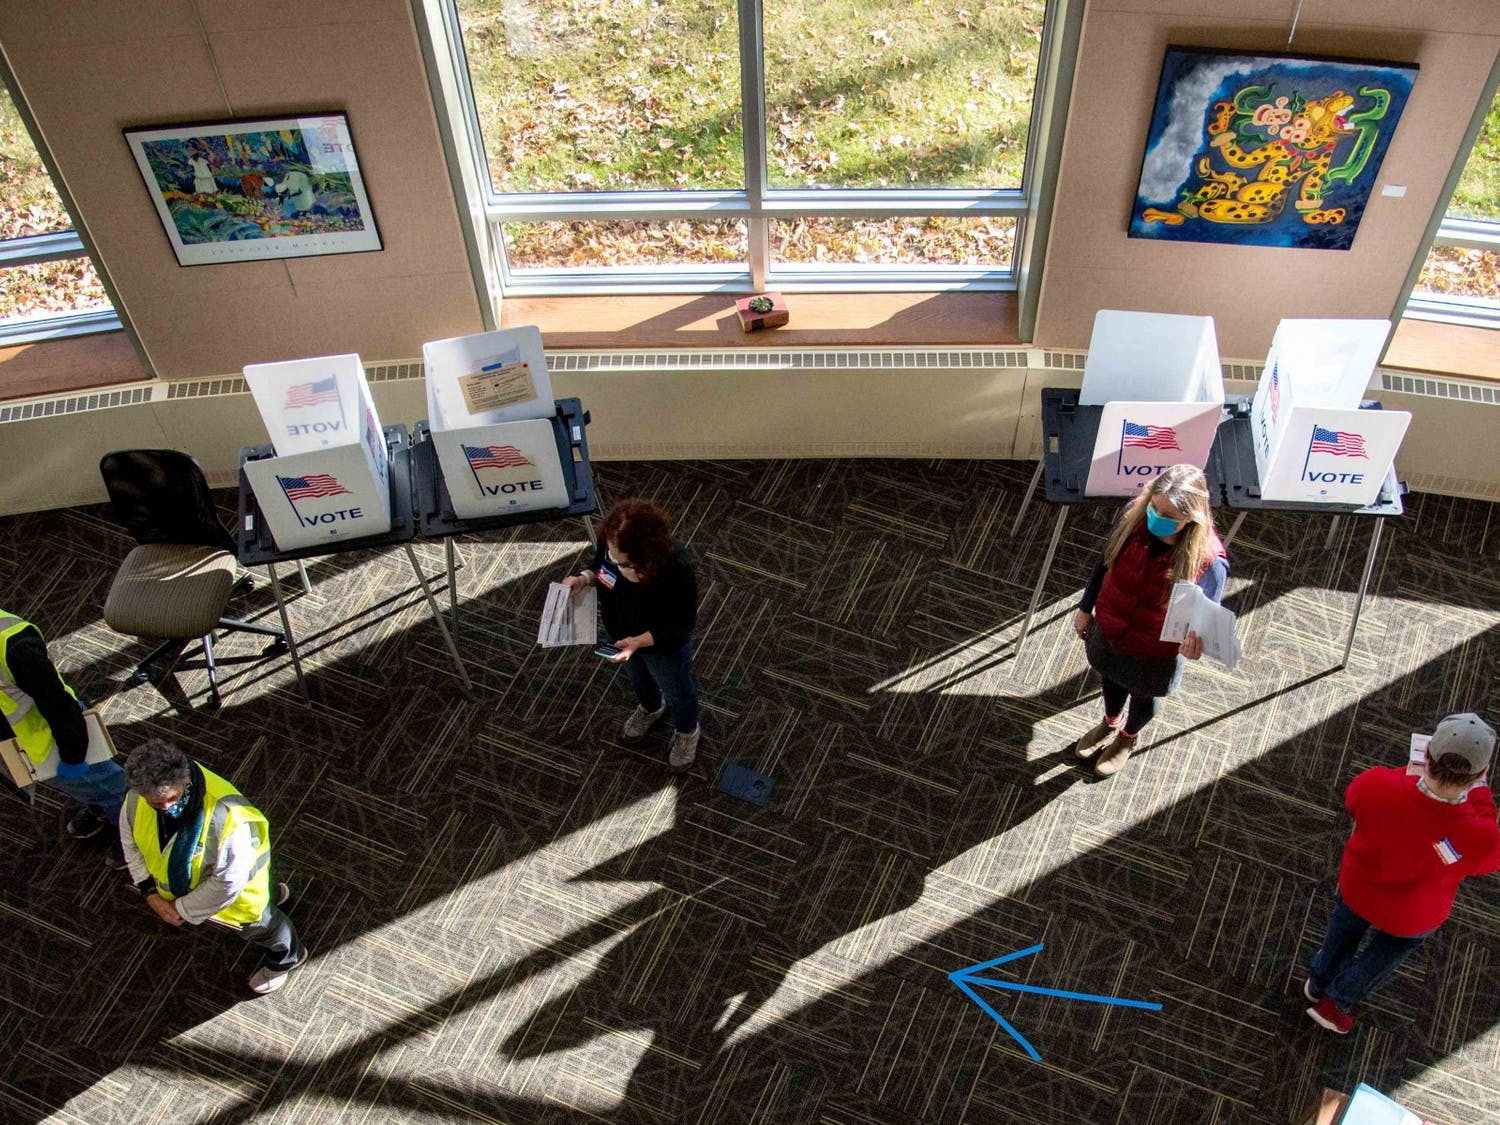 Election officials operate a polling place at the Edgewood College Rennebohm Library in Madison, Wis., on November 3, 2020.